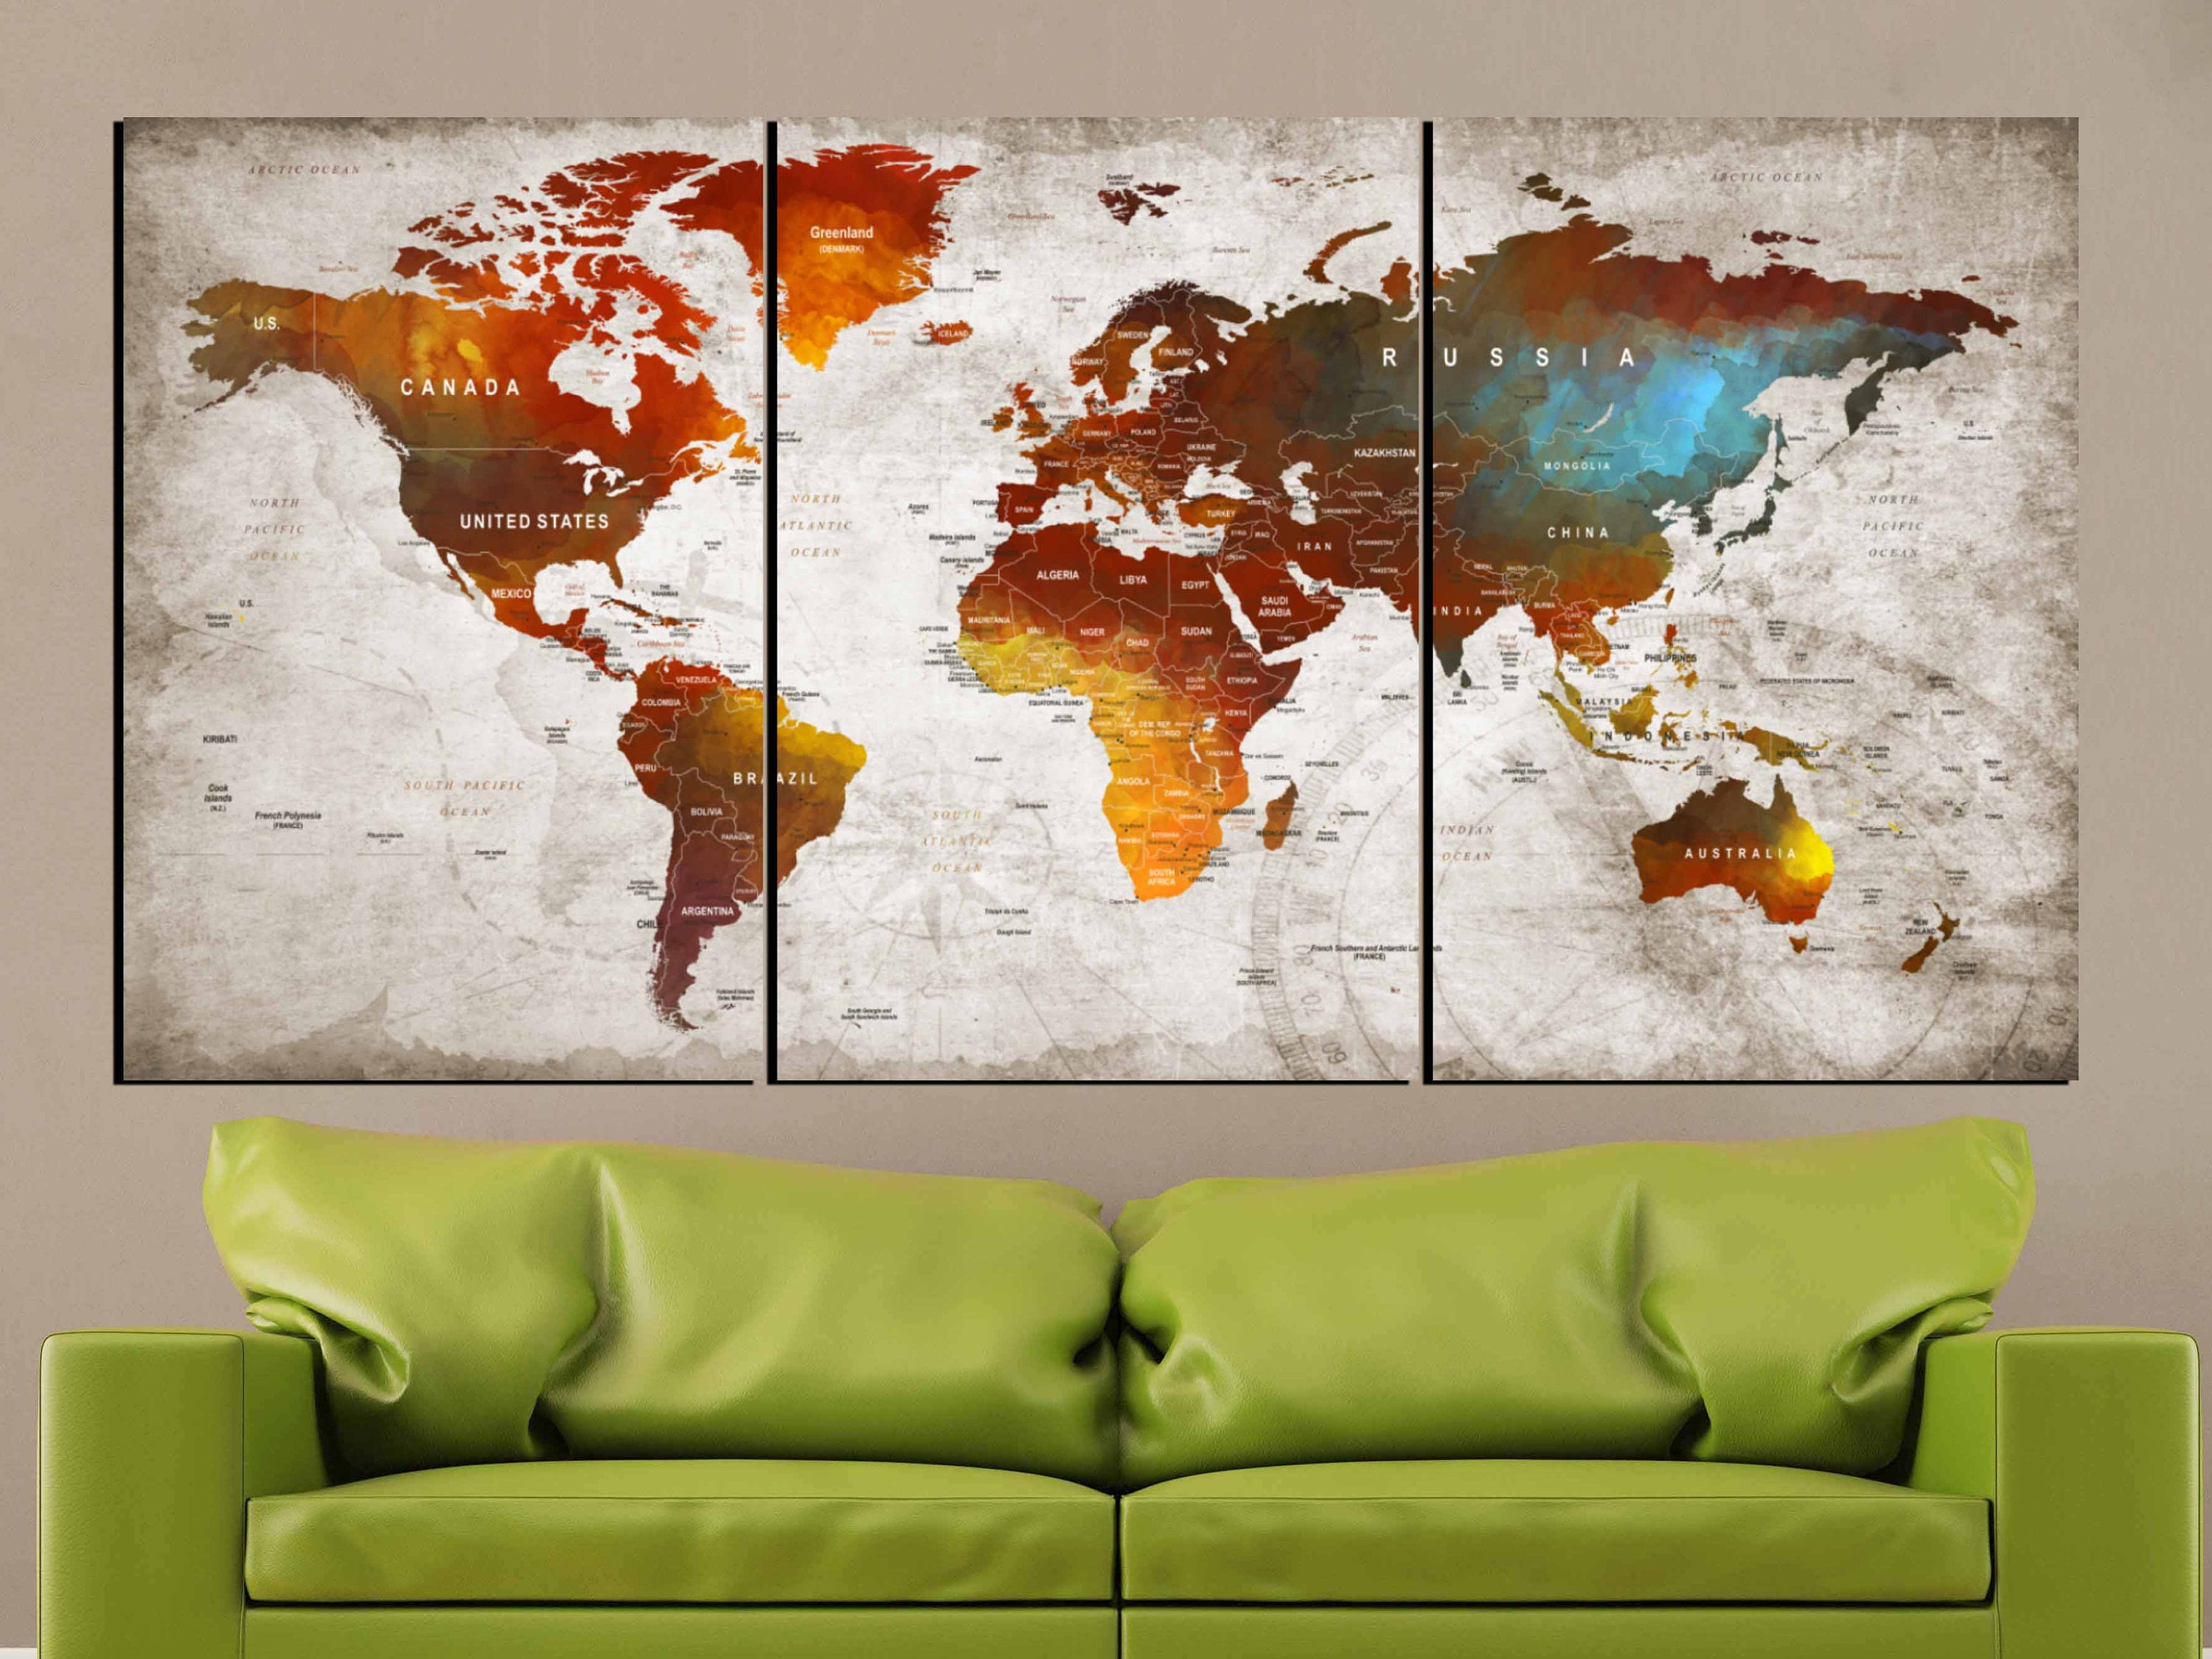 World on fire artworld map artworld map canvas panelsworld map gallery photo gallery photo gallery photo gallery photo gumiabroncs Images